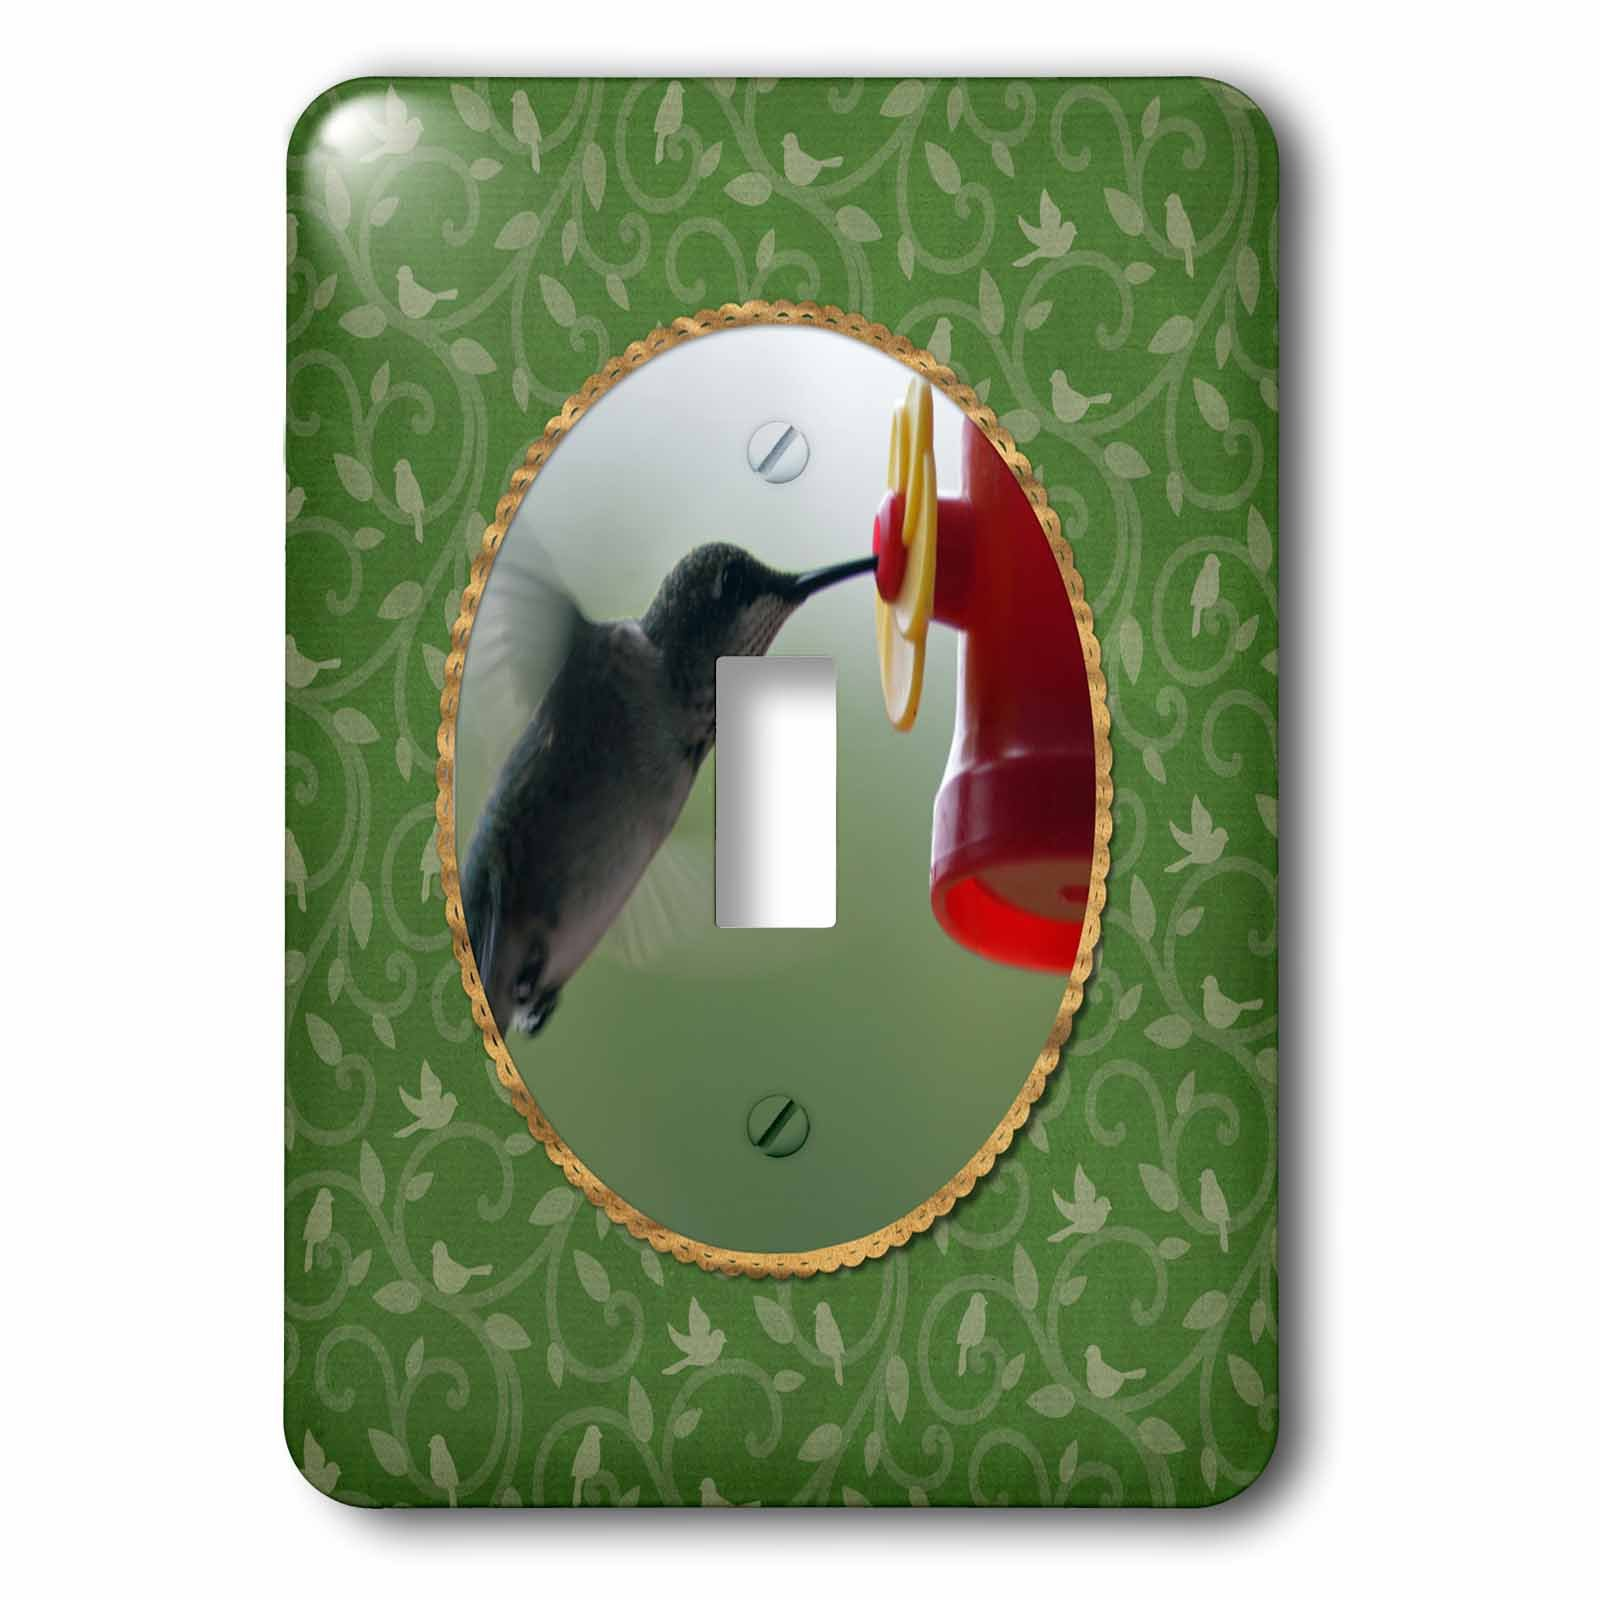 3dRose Beverly Turner Bird Photography - Hummingbird at Feeder in Round, Birds on Branches, Green - Light Switch Covers - single toggle switch (lsp_274408_1)